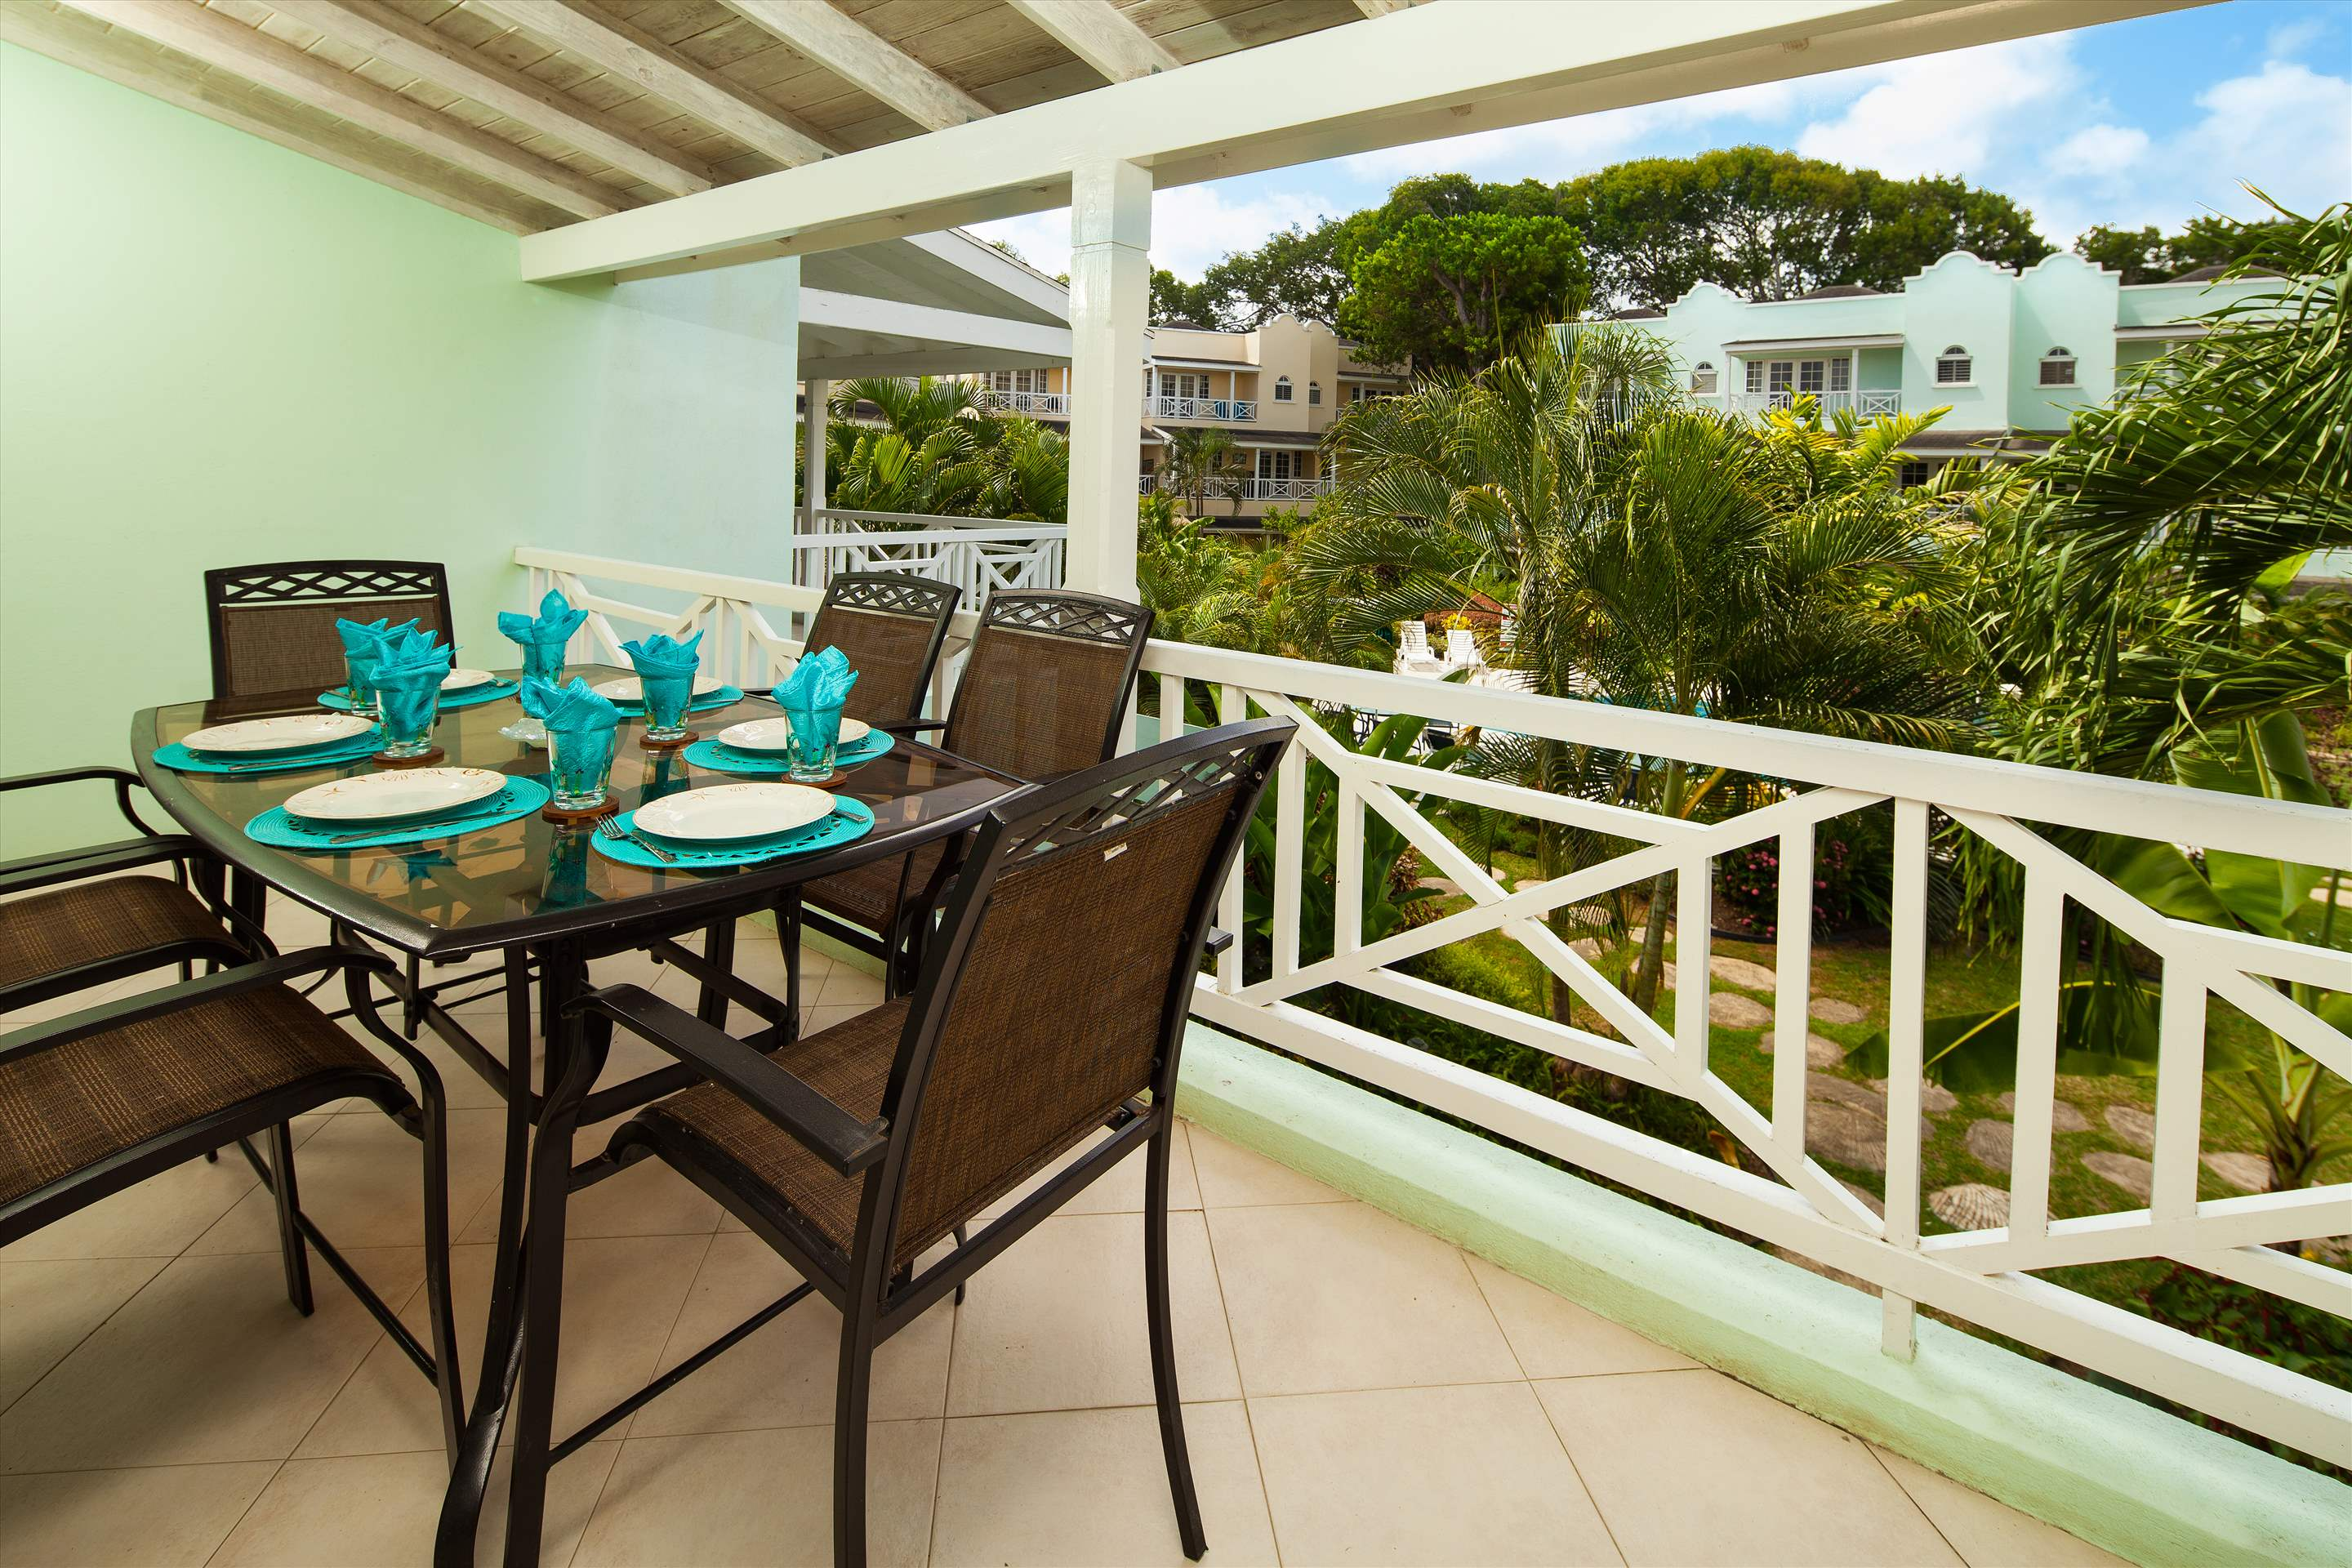 Margate Gardens 4, 2 bedroom, 2 bedroom apartment in St. Lawrence Gap & South Coast, Barbados Photo #3